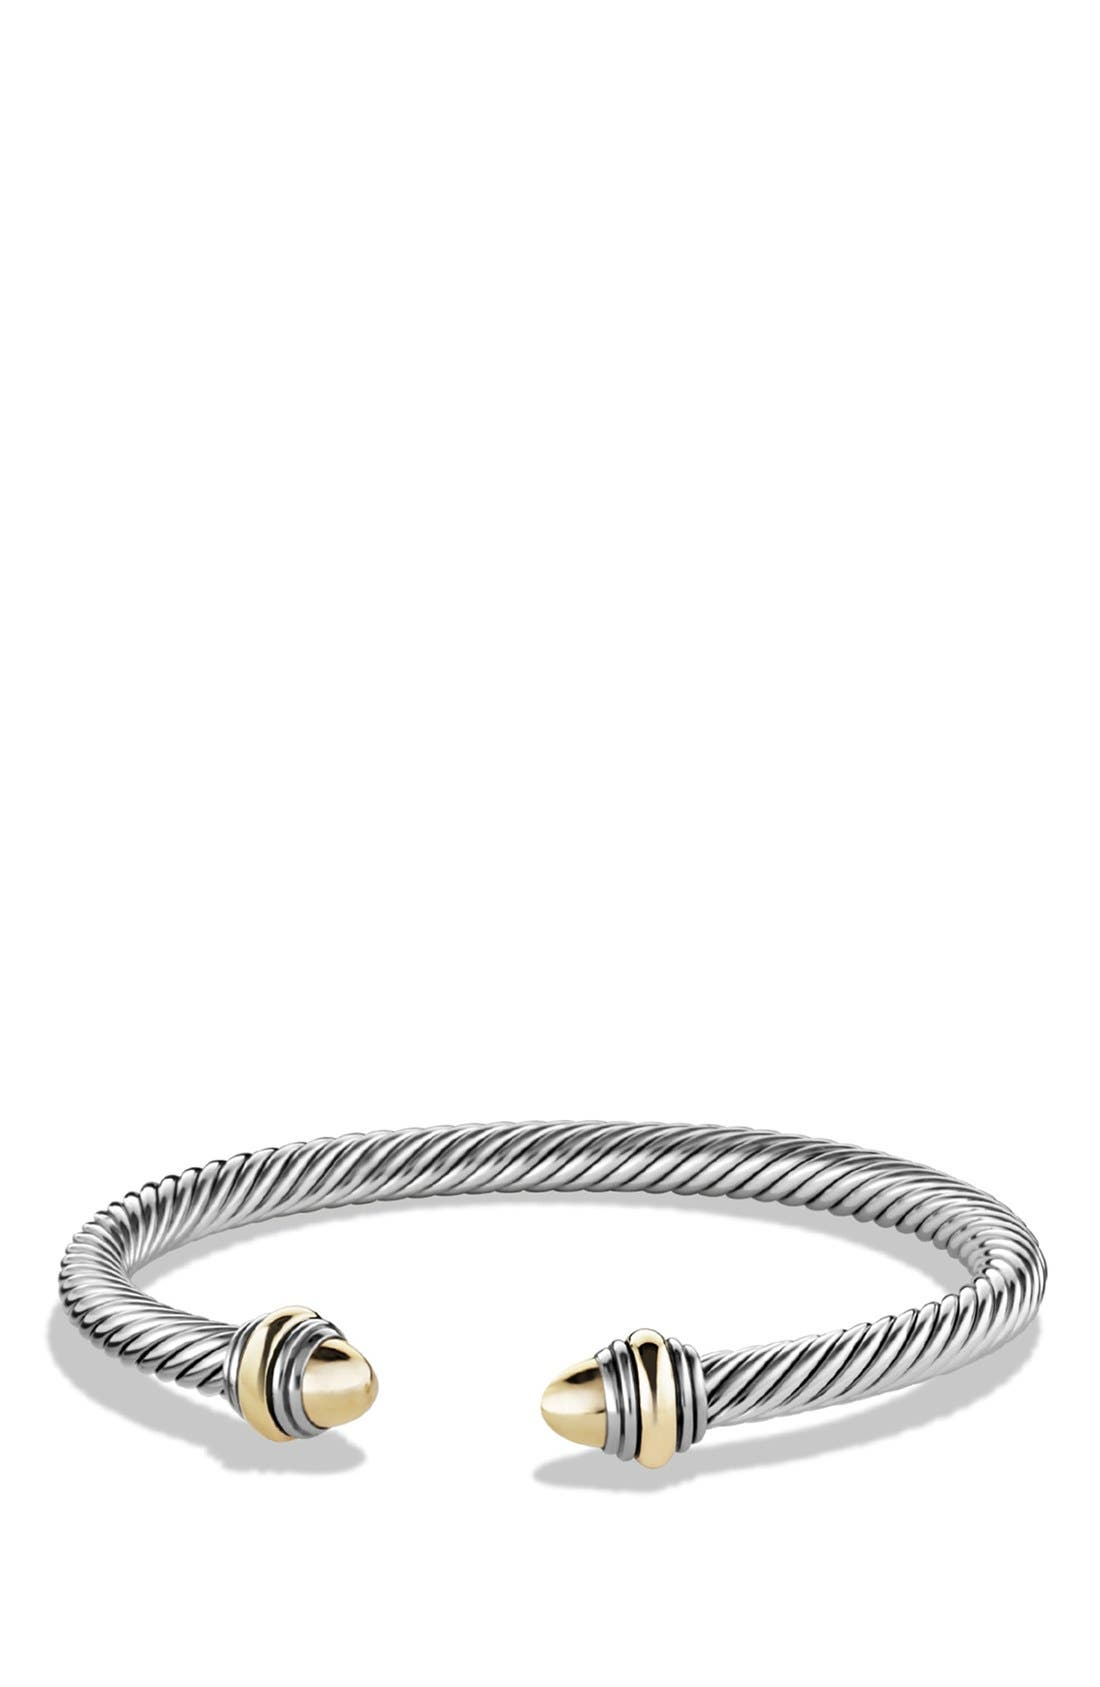 Cable Classics Bracelet with Gold, 5mm,                             Main thumbnail 1, color,                             GOLD DOME